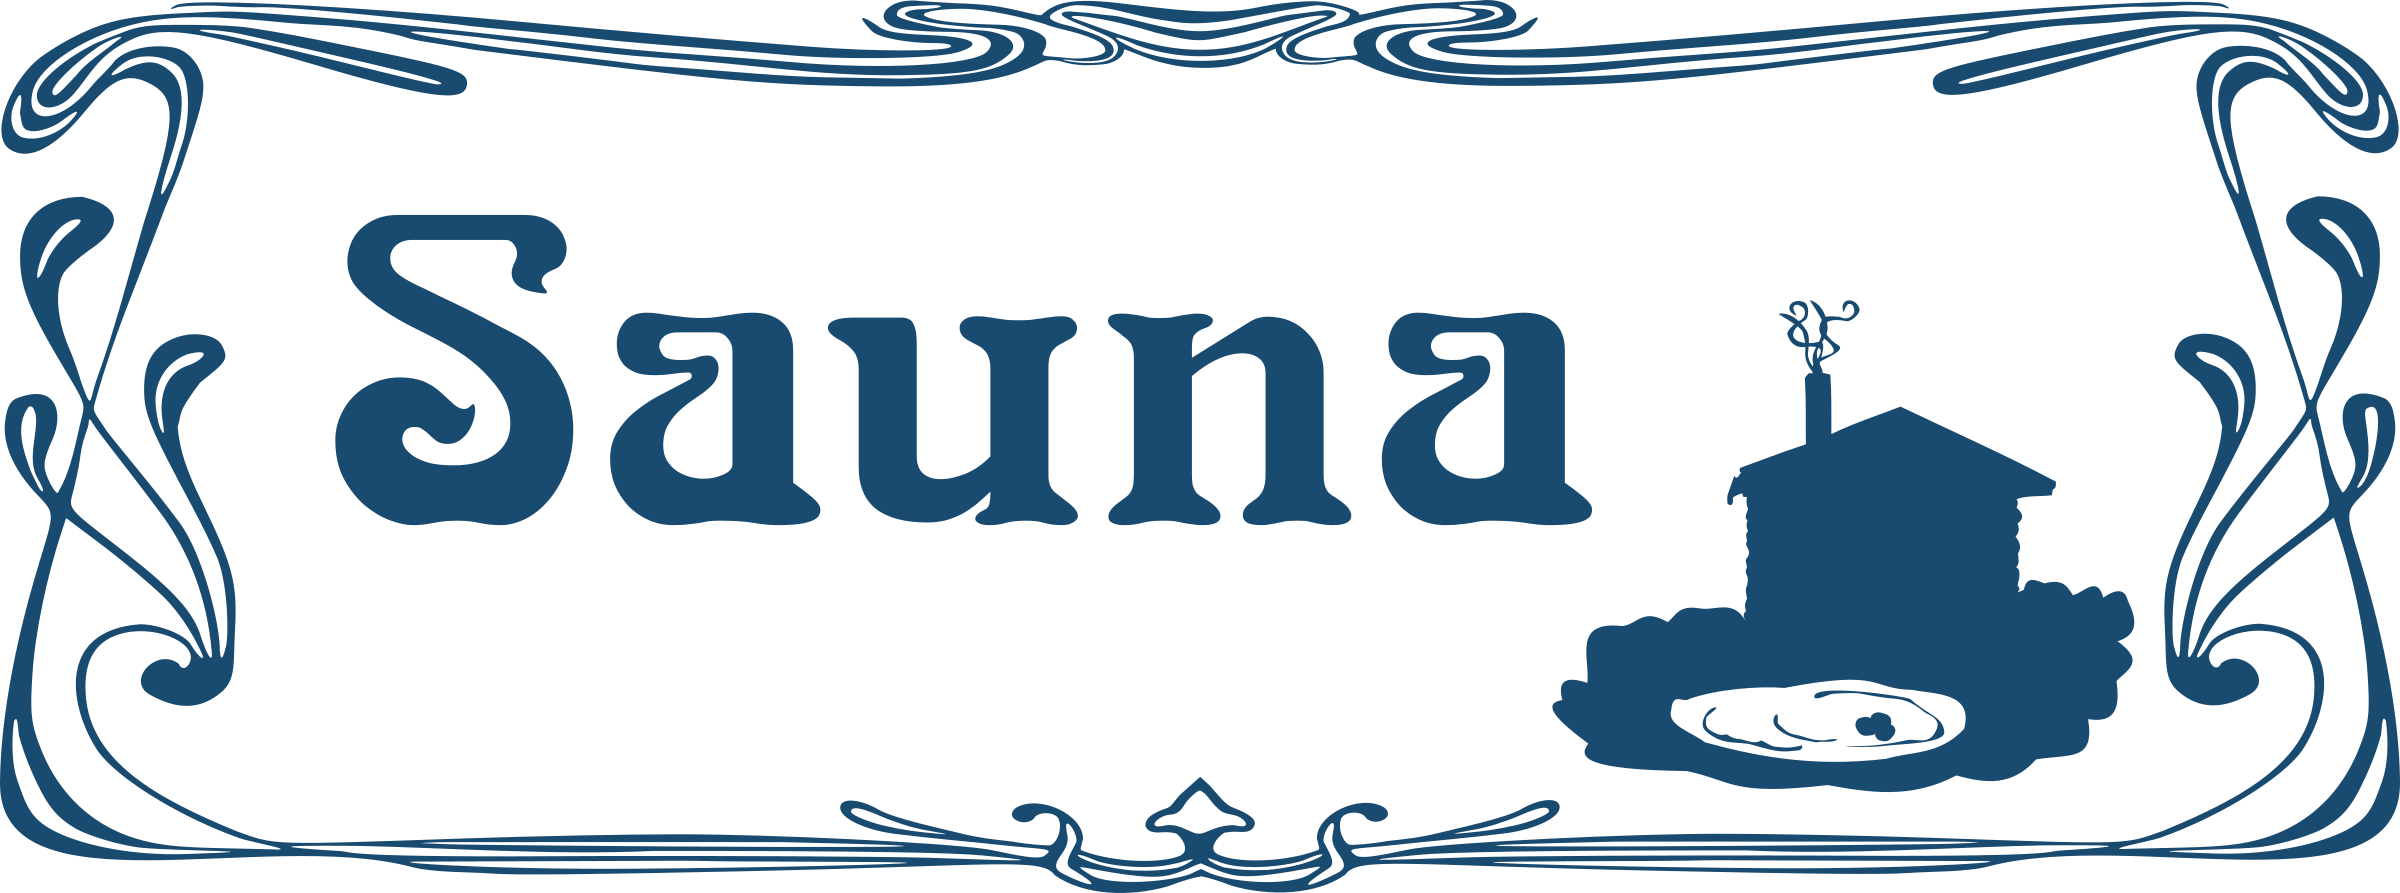 Sauna Sign by Moini